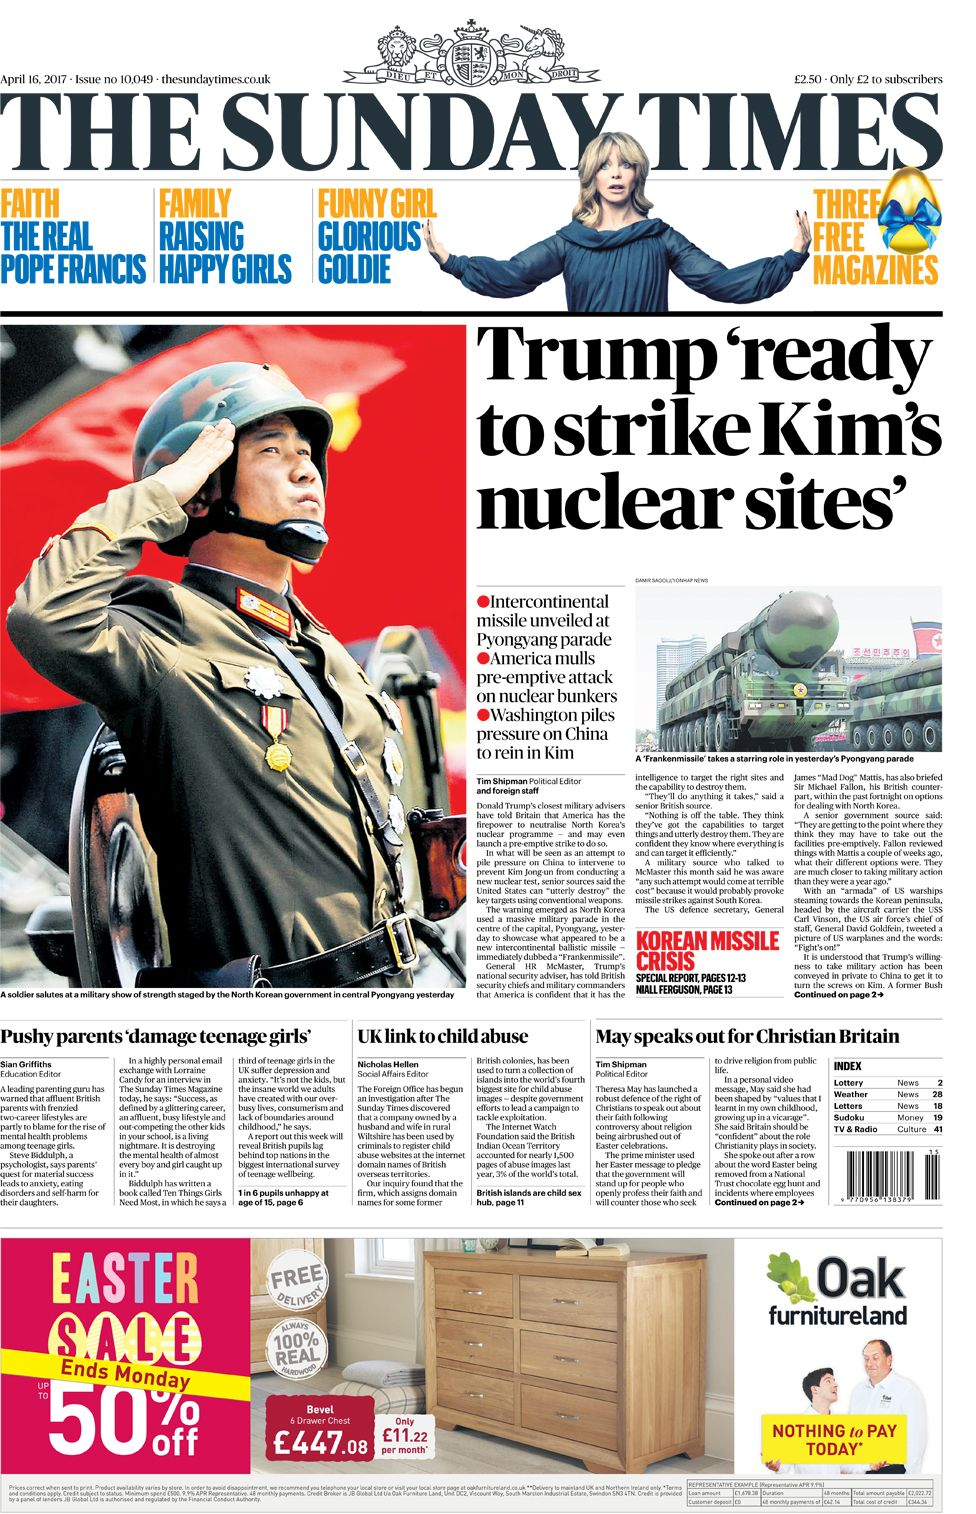 Sunday Times front page - 16/04/17